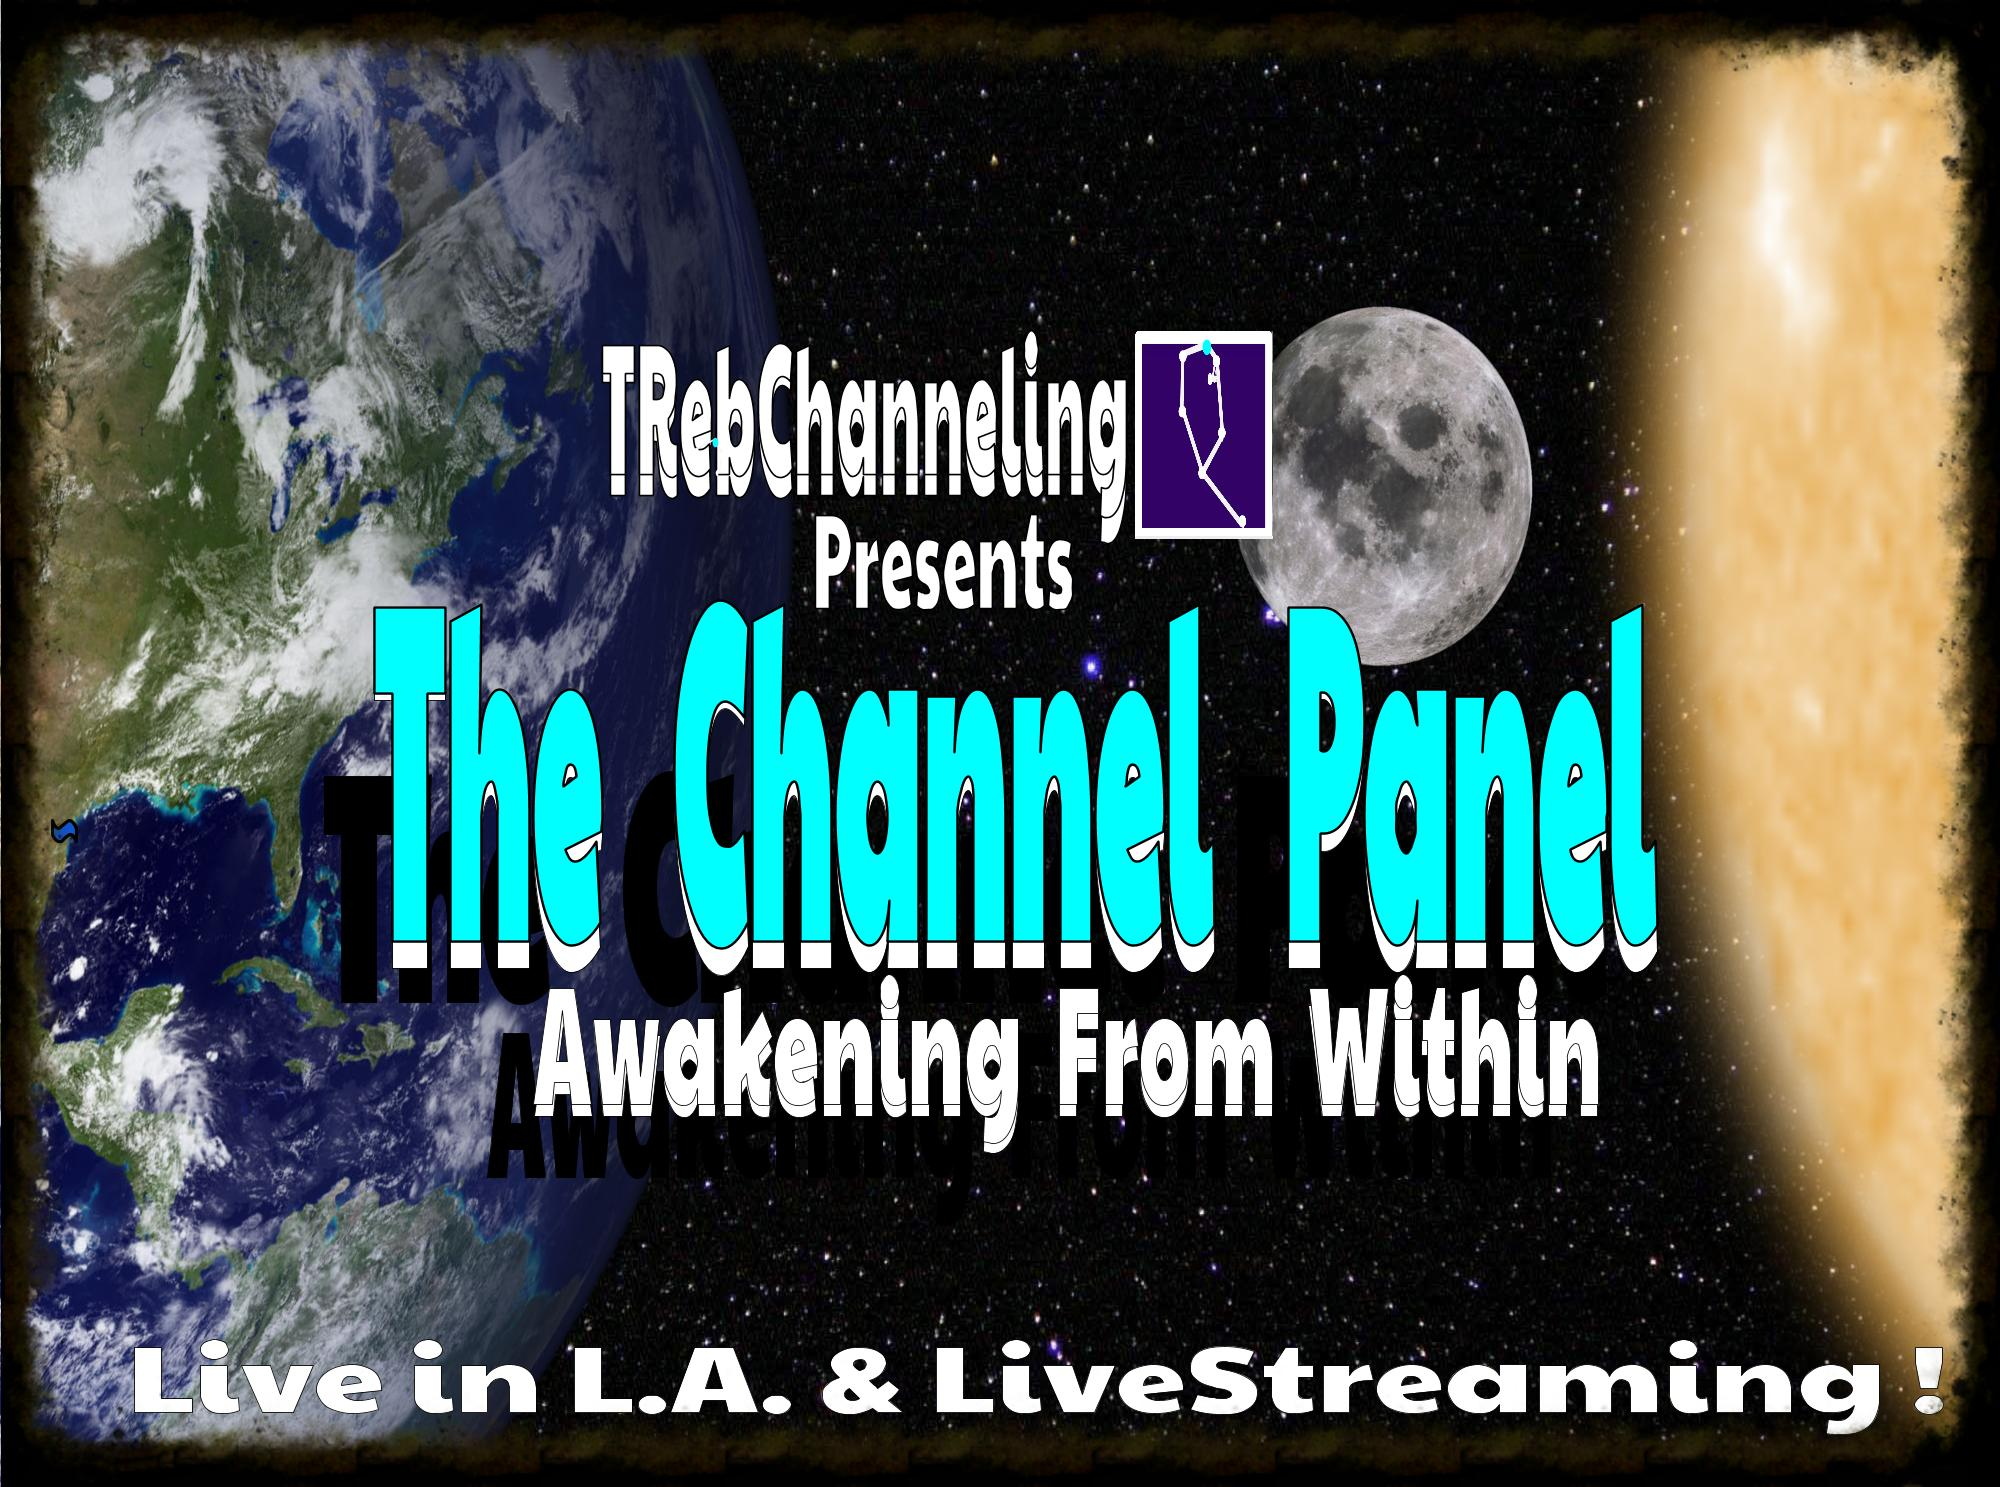 The Channel Panel #TheChannelPanel2